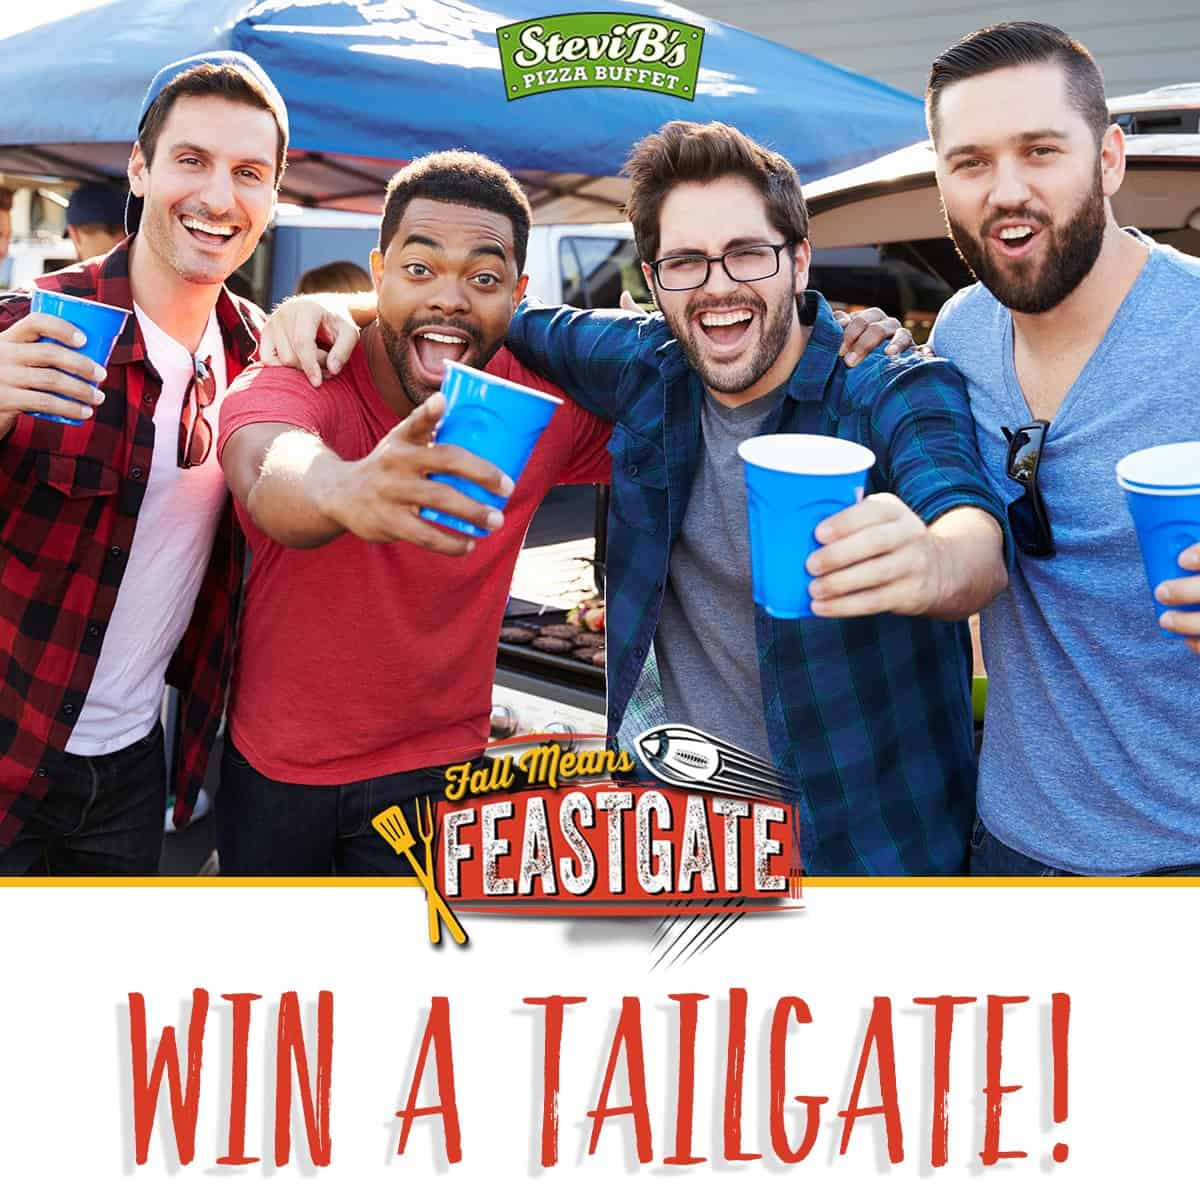 Stevi B's pizza win a tailgate party